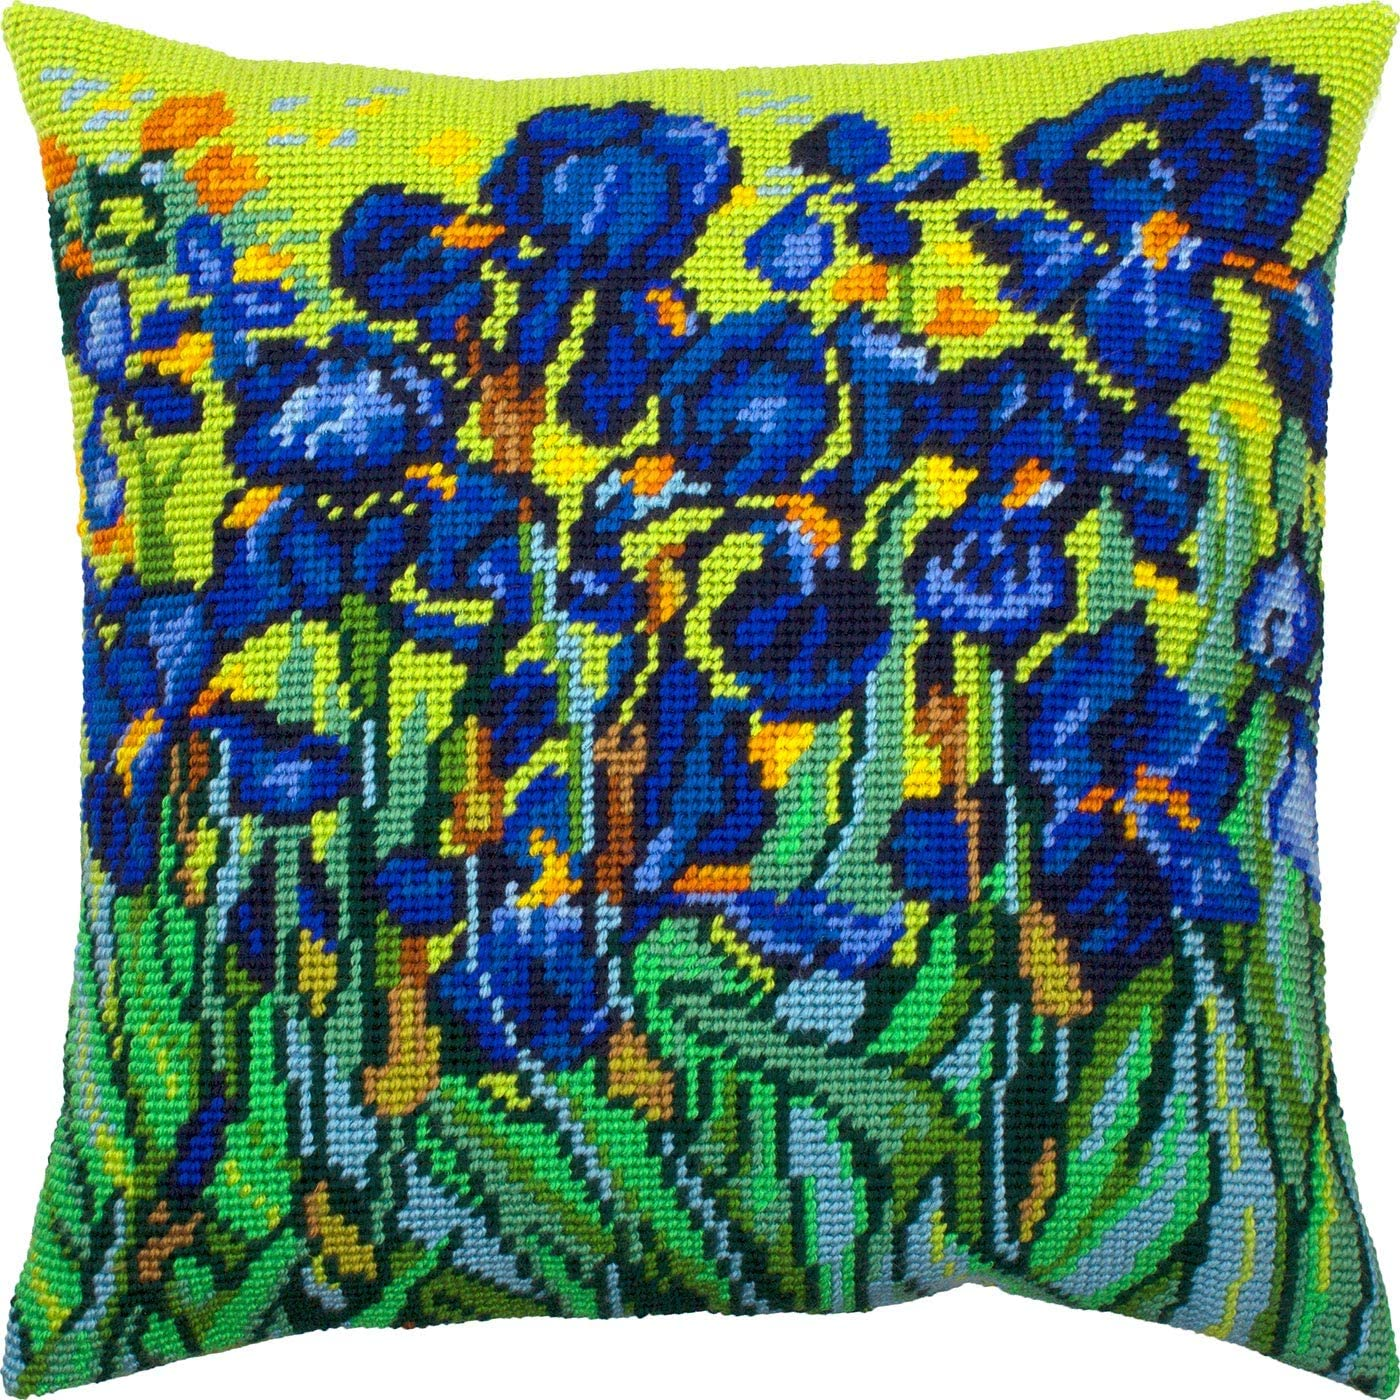 Printed Tapestry Canvas Pink Irises European Quality Needlepoint Kit Throw Pillow 16/×16 Inches